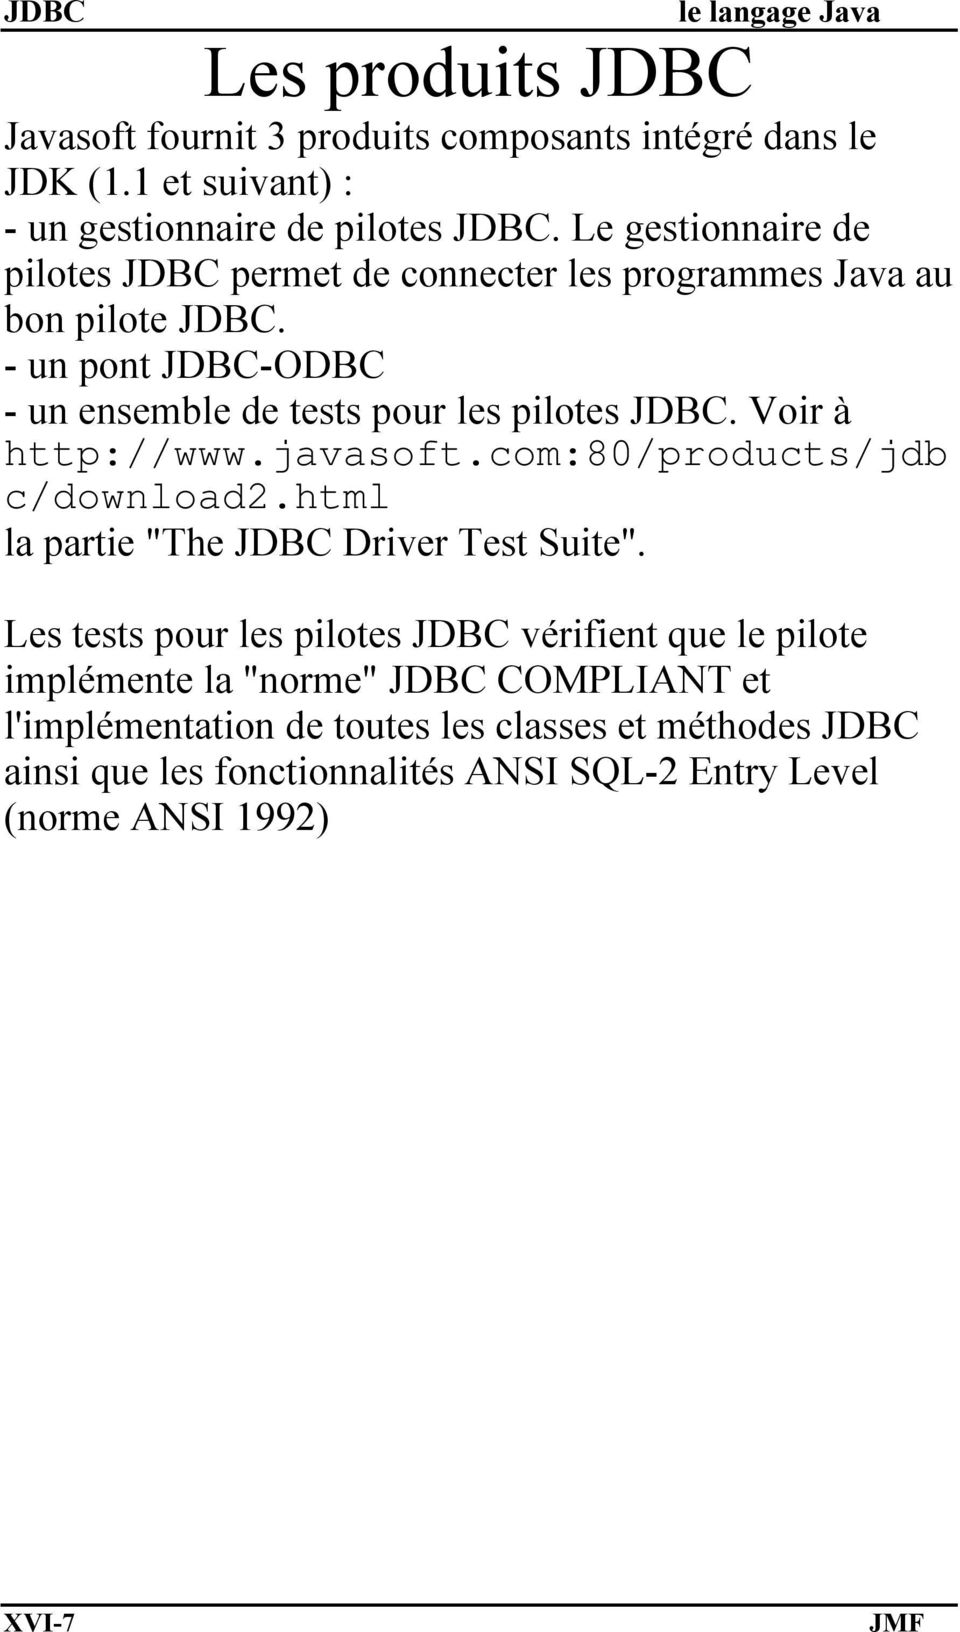 - un pont JDBC-ODBC - un ensemble de tests pour les pilotes JDBC. Voir à http://www.javasoft.com:80/products/jdb c/download2.